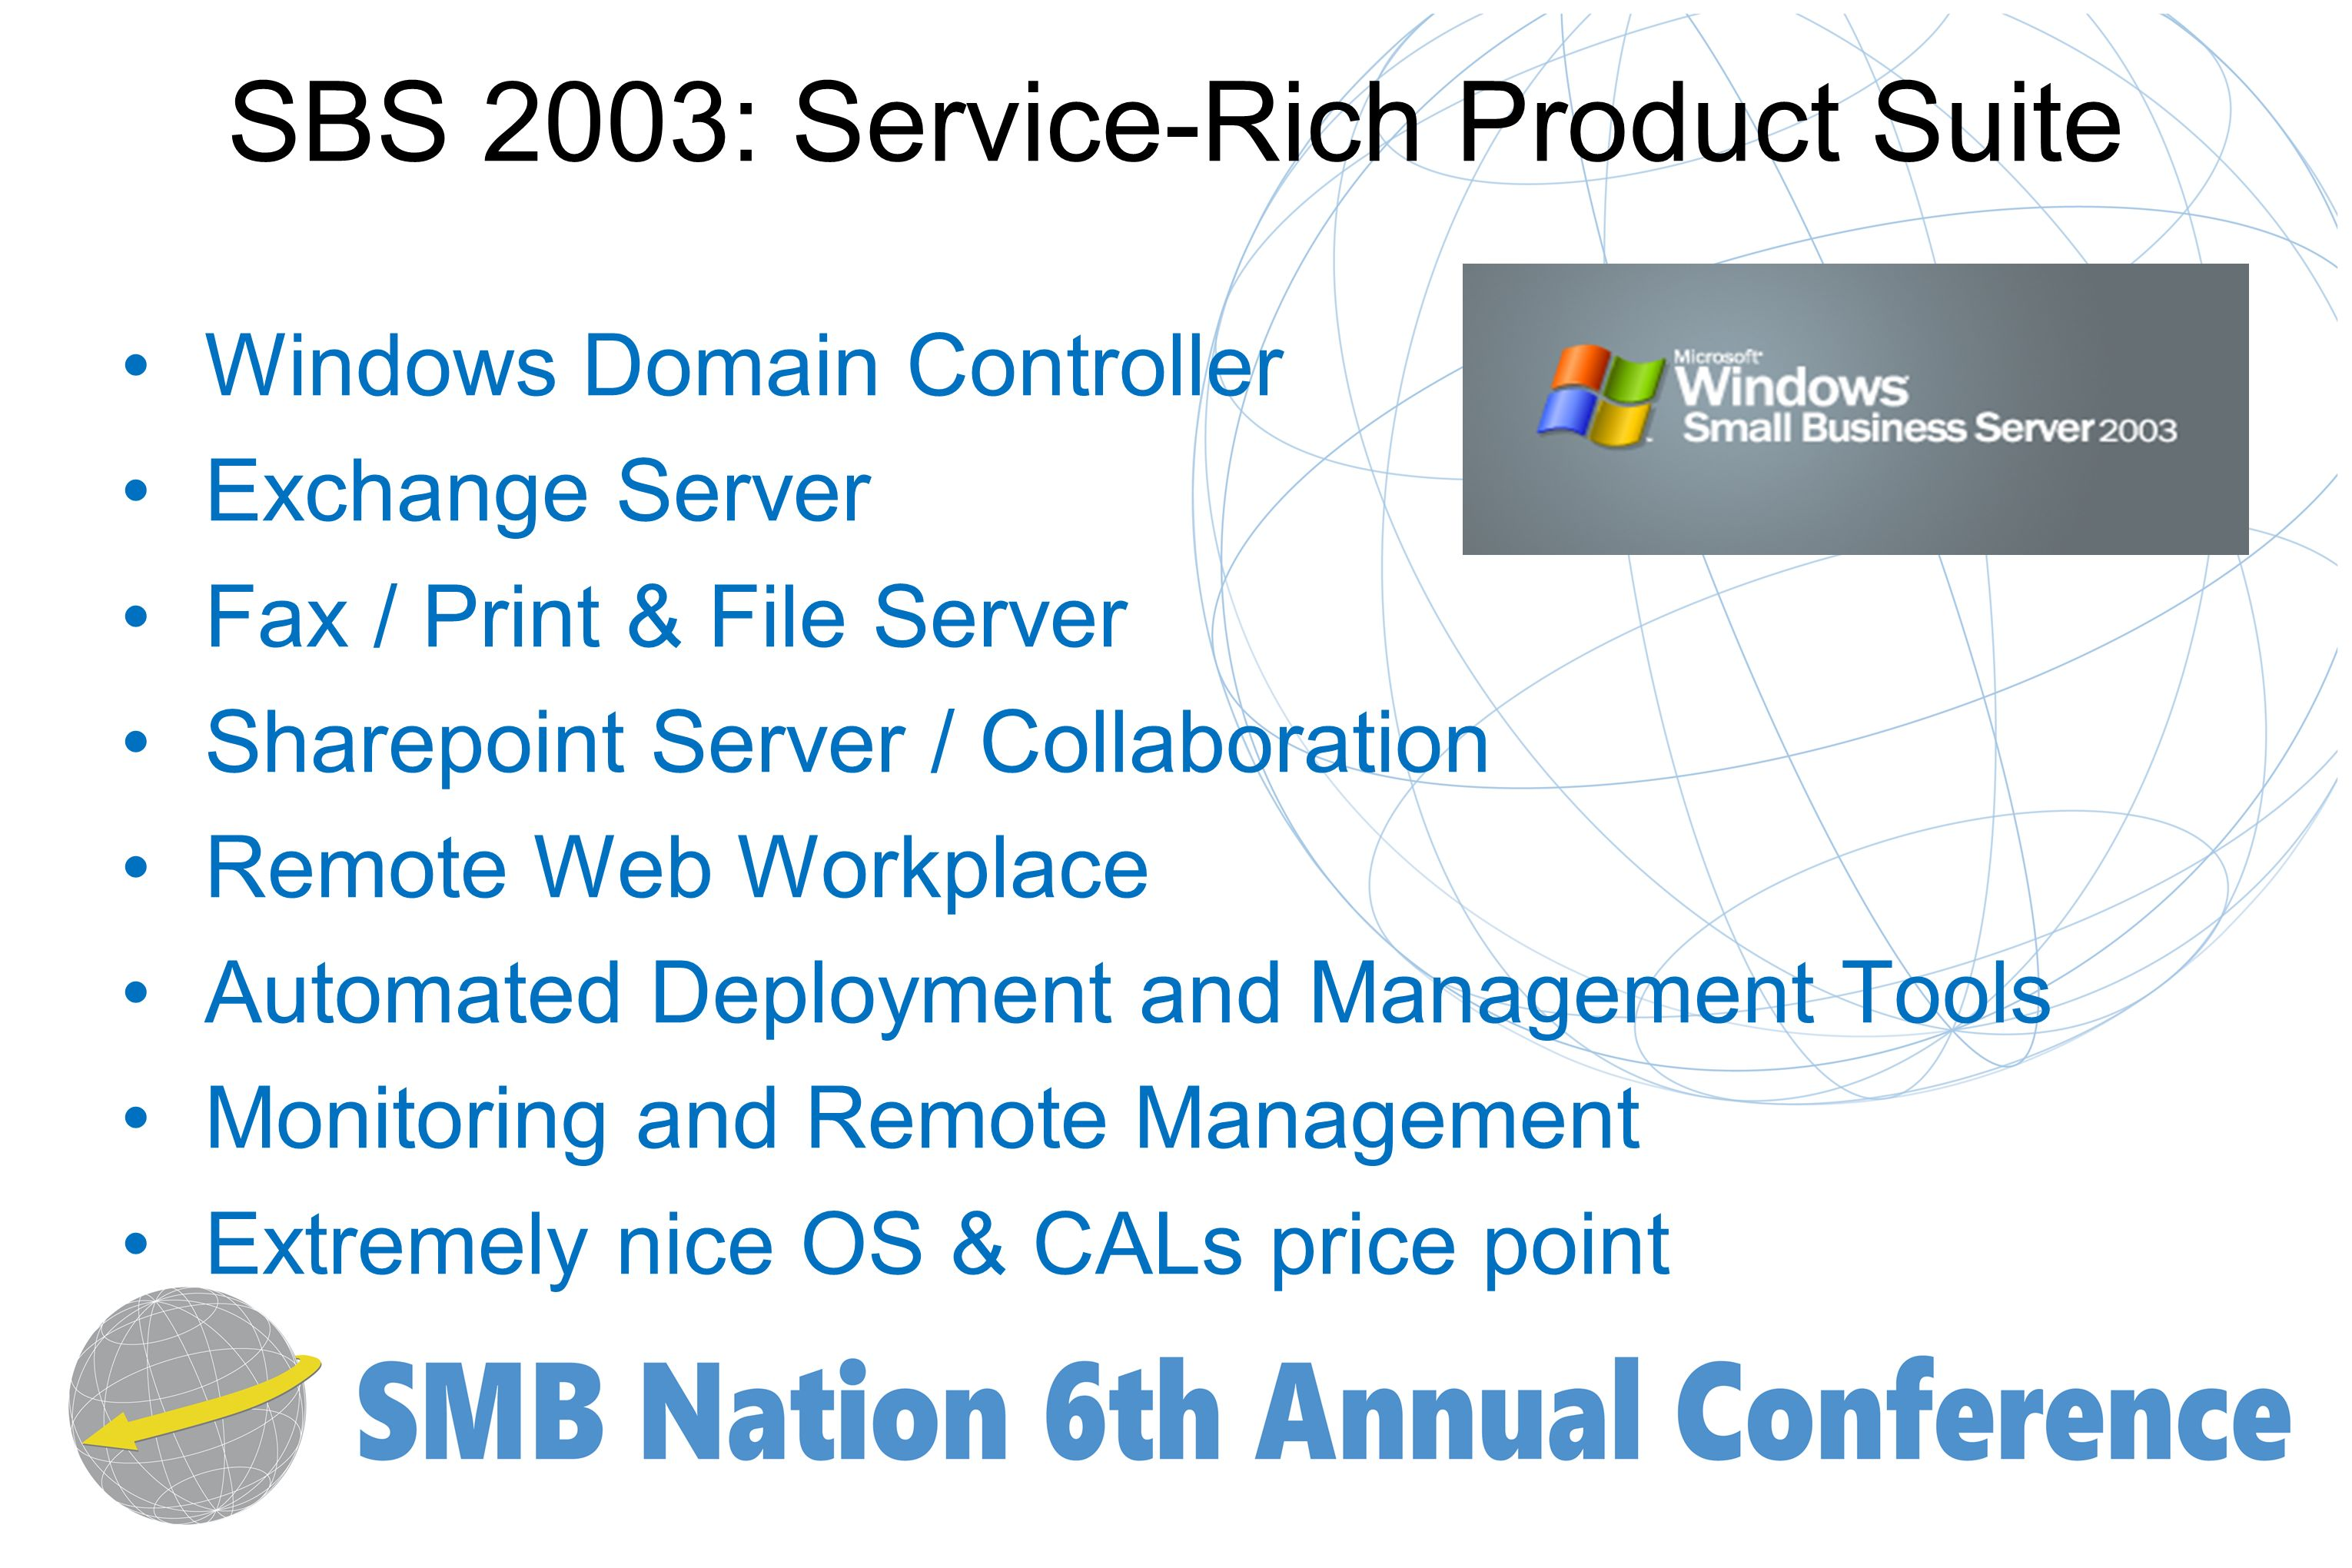 SBS 2003: Service-Rich Product Suite Windows Domain Controller Exchange Server Fax / Print & File Server Sharepoint Server / Collaboration Remote Web Workplace Automated Deployment and Management Tools Monitoring and Remote Management Extremely nice OS & CALs price point